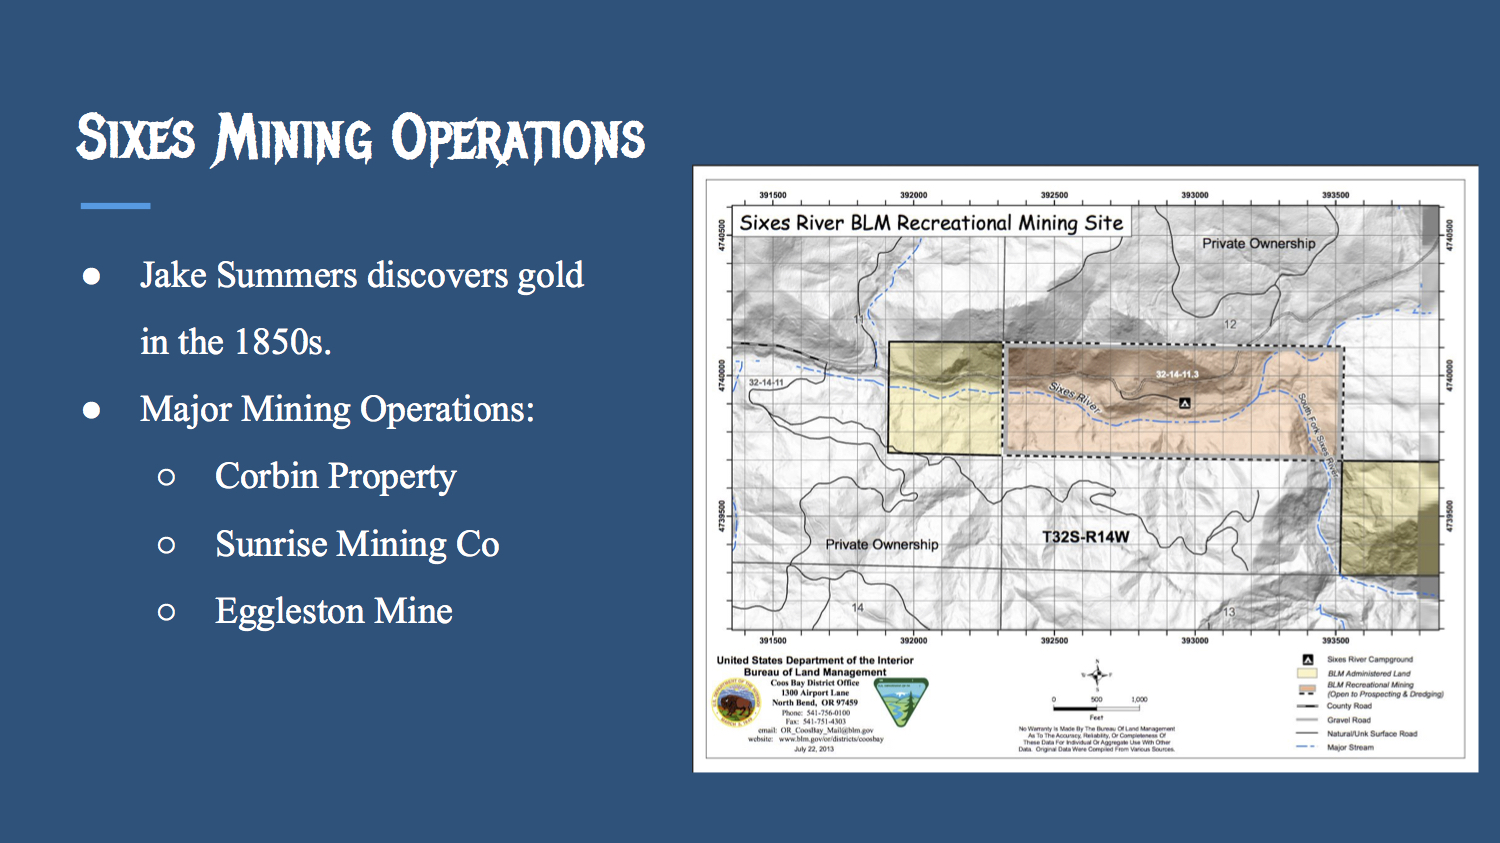 Sixes Mining Operations